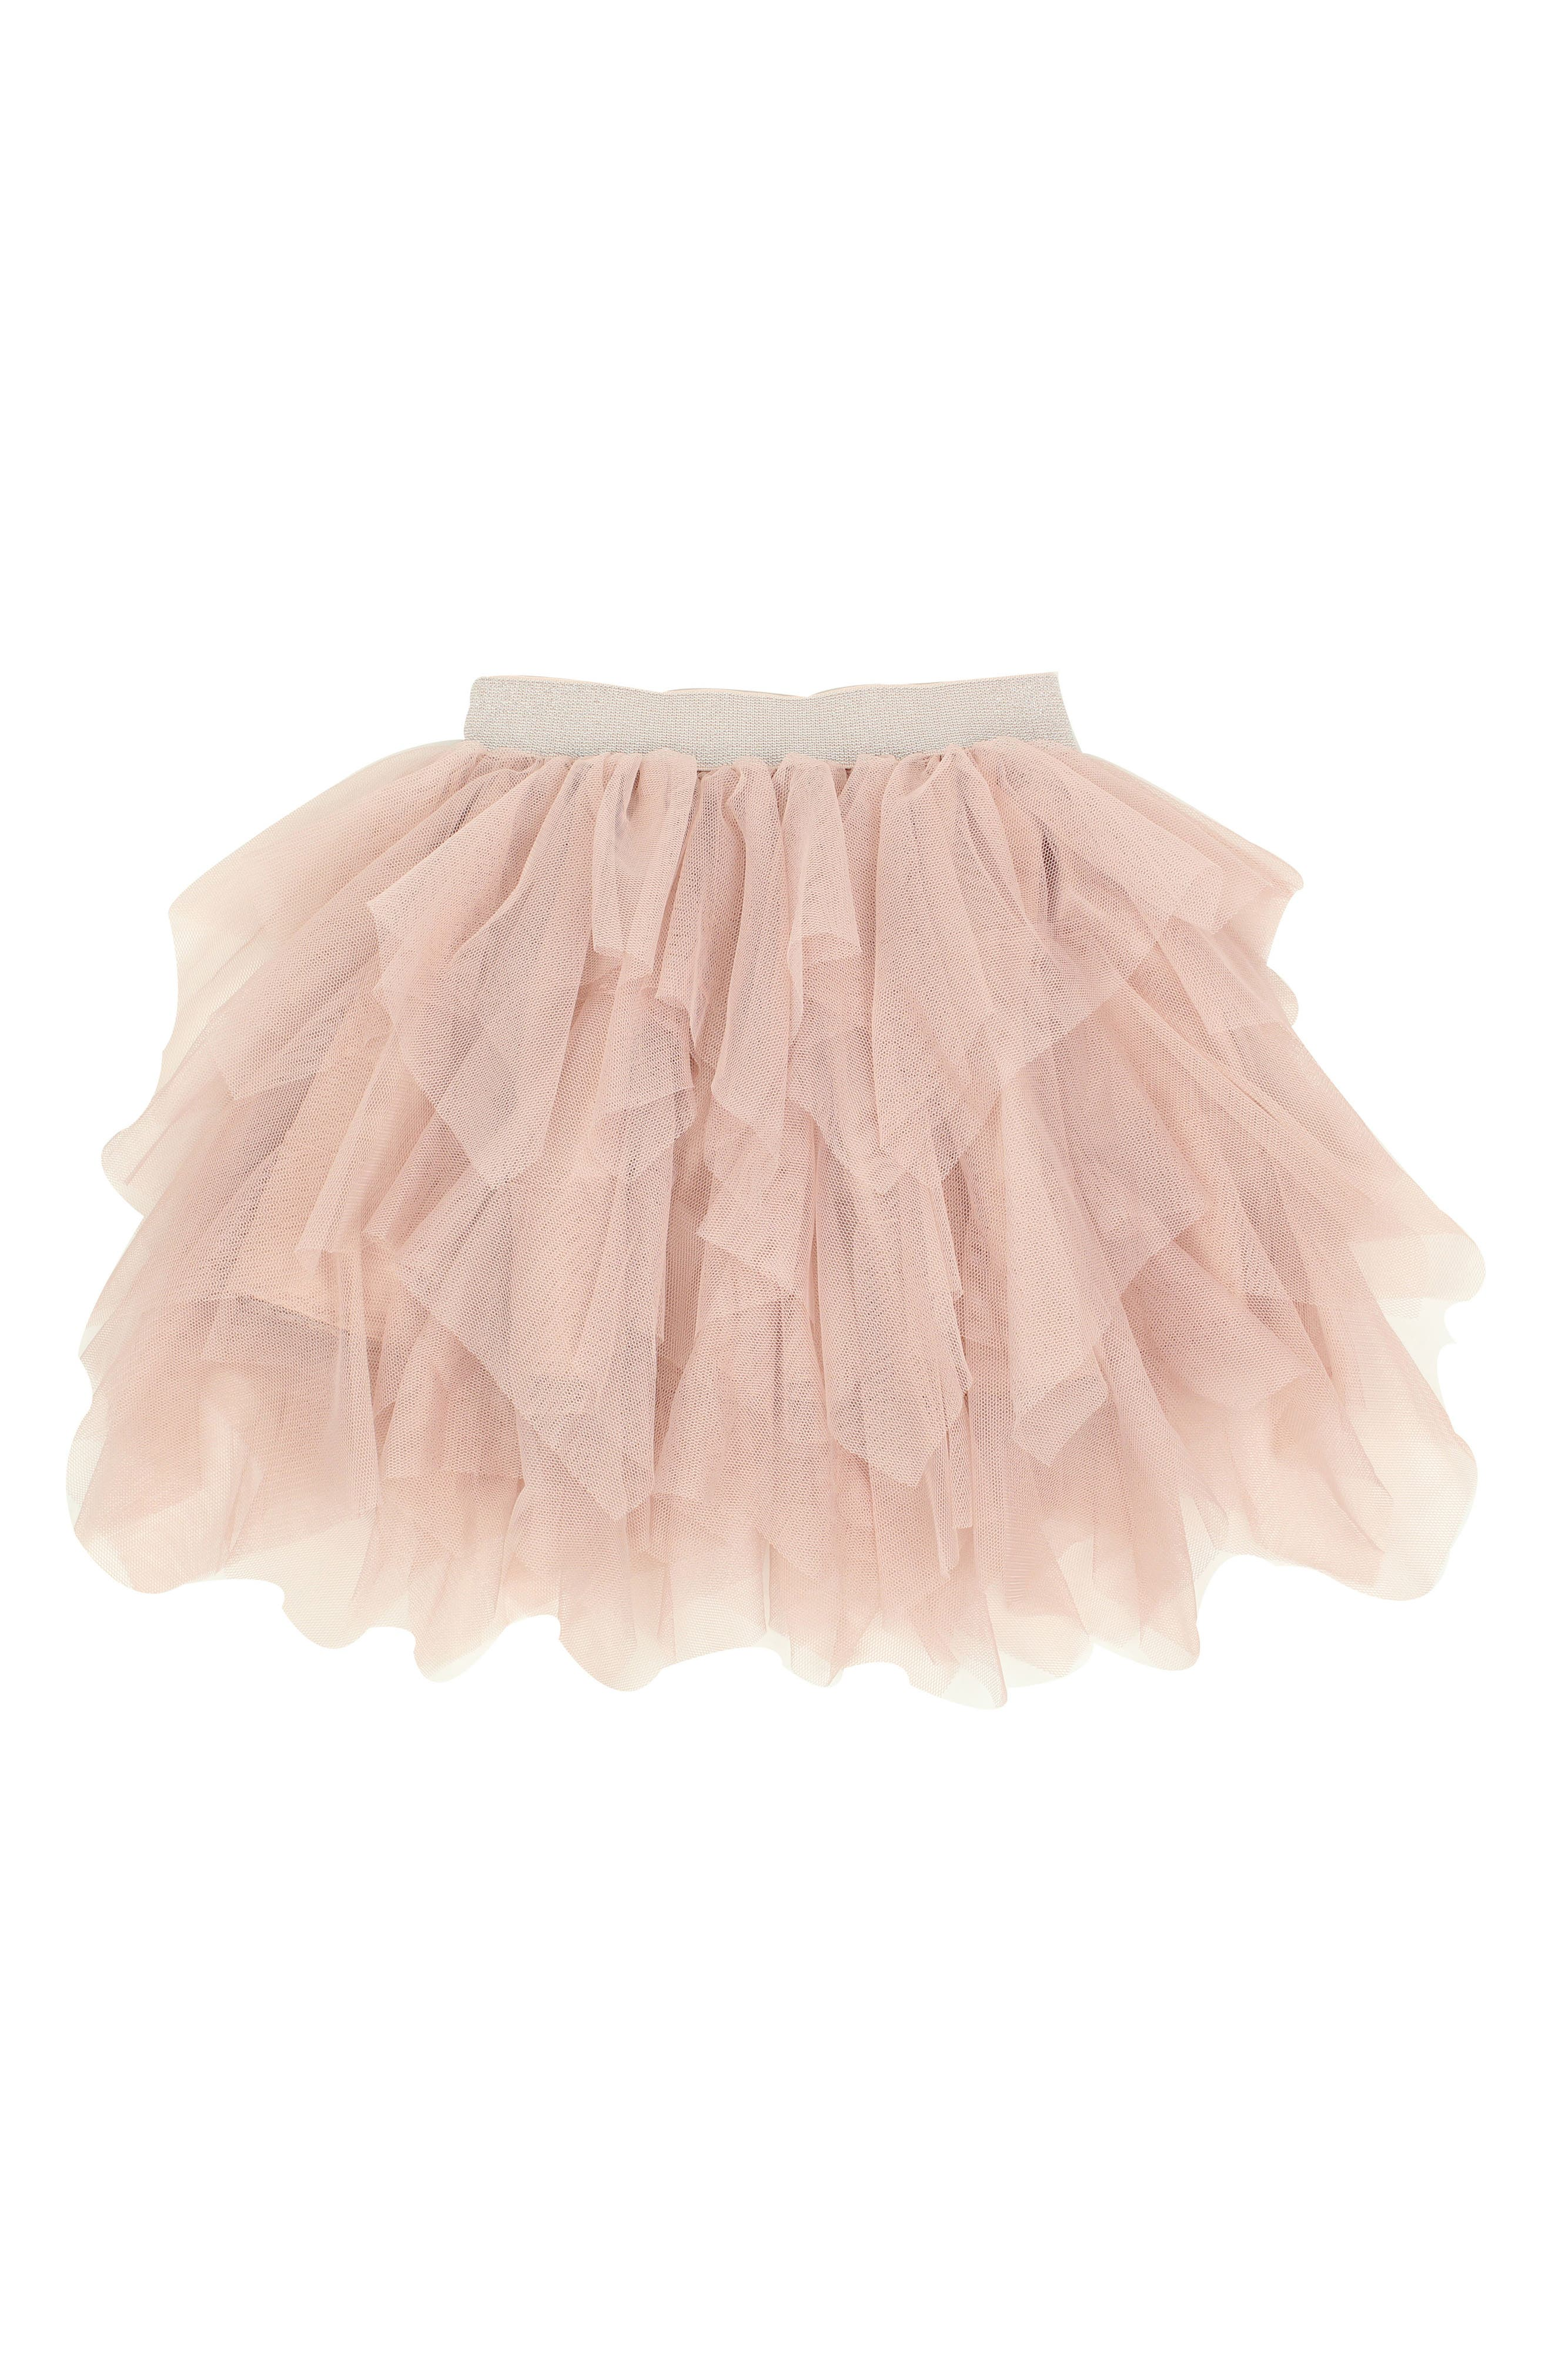 POPATU Tiered Tulle Skirt, Main, color, 950